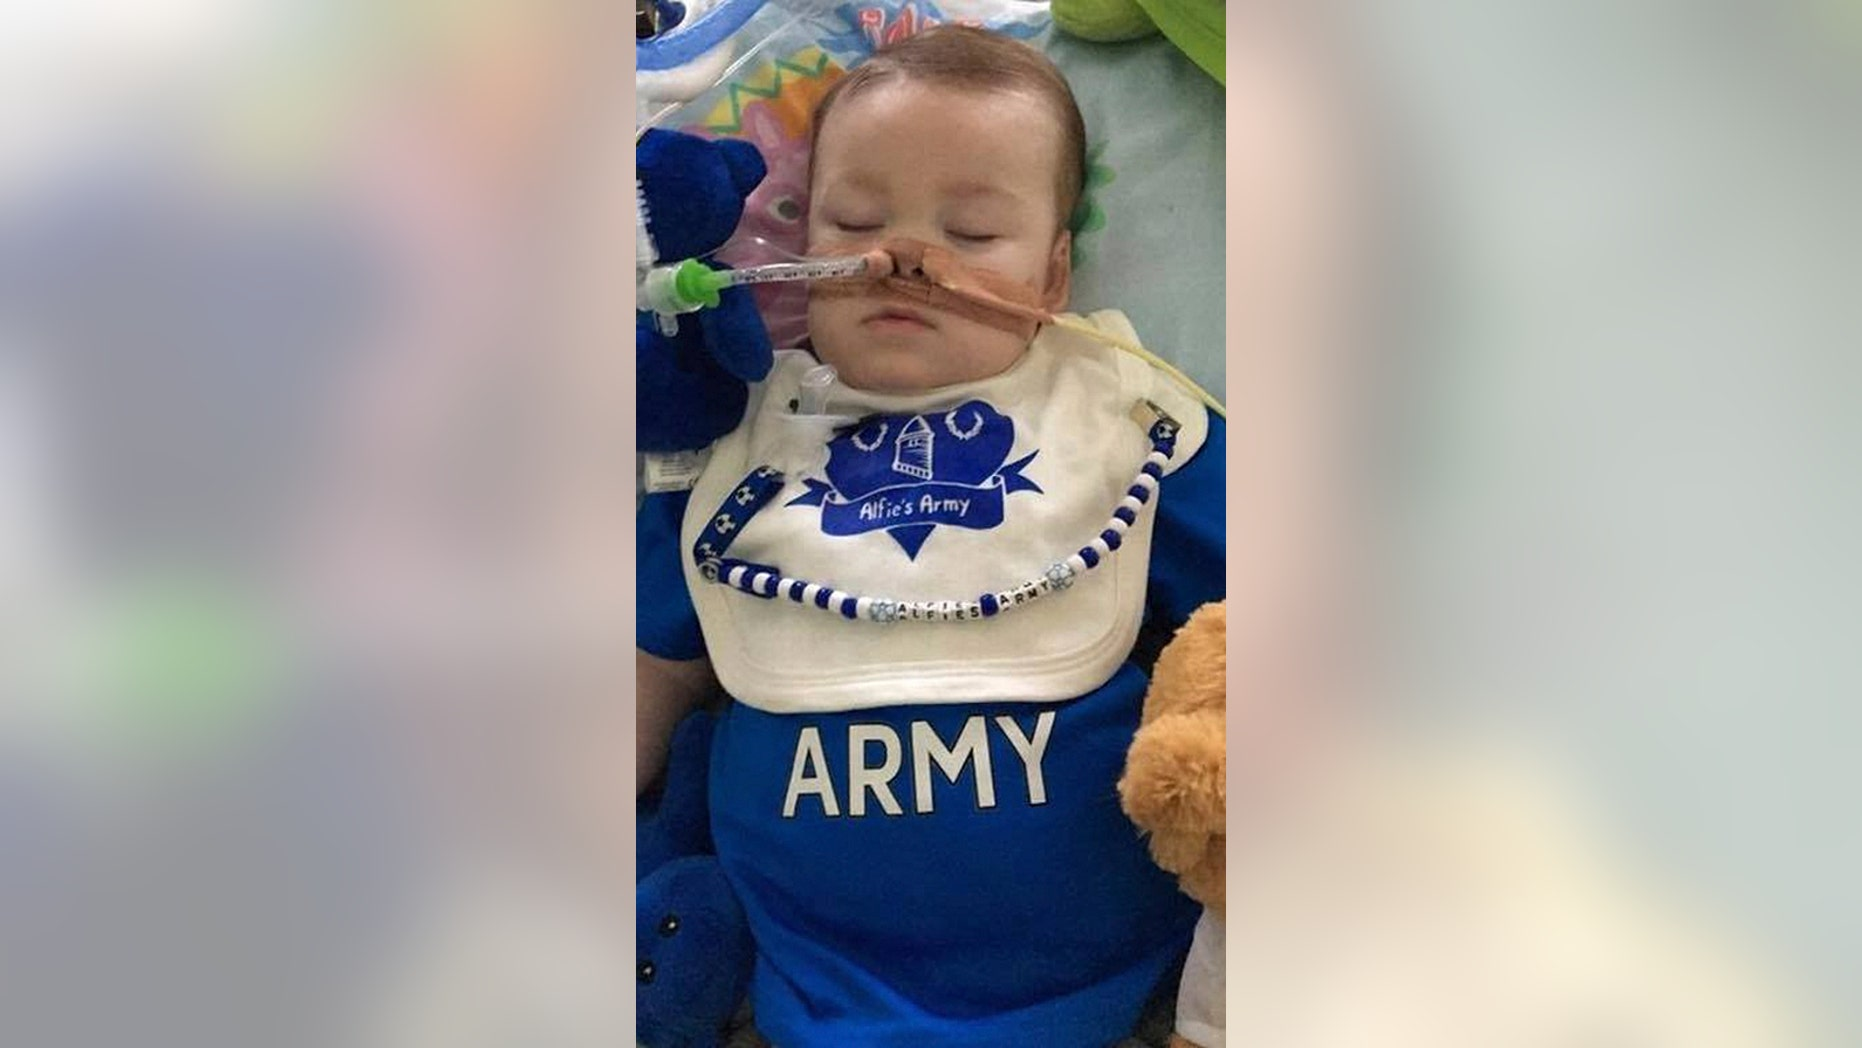 21-month-old Alfie Evans has a mystery degenerative brain condition that has left him in a coma for a year, reports said.